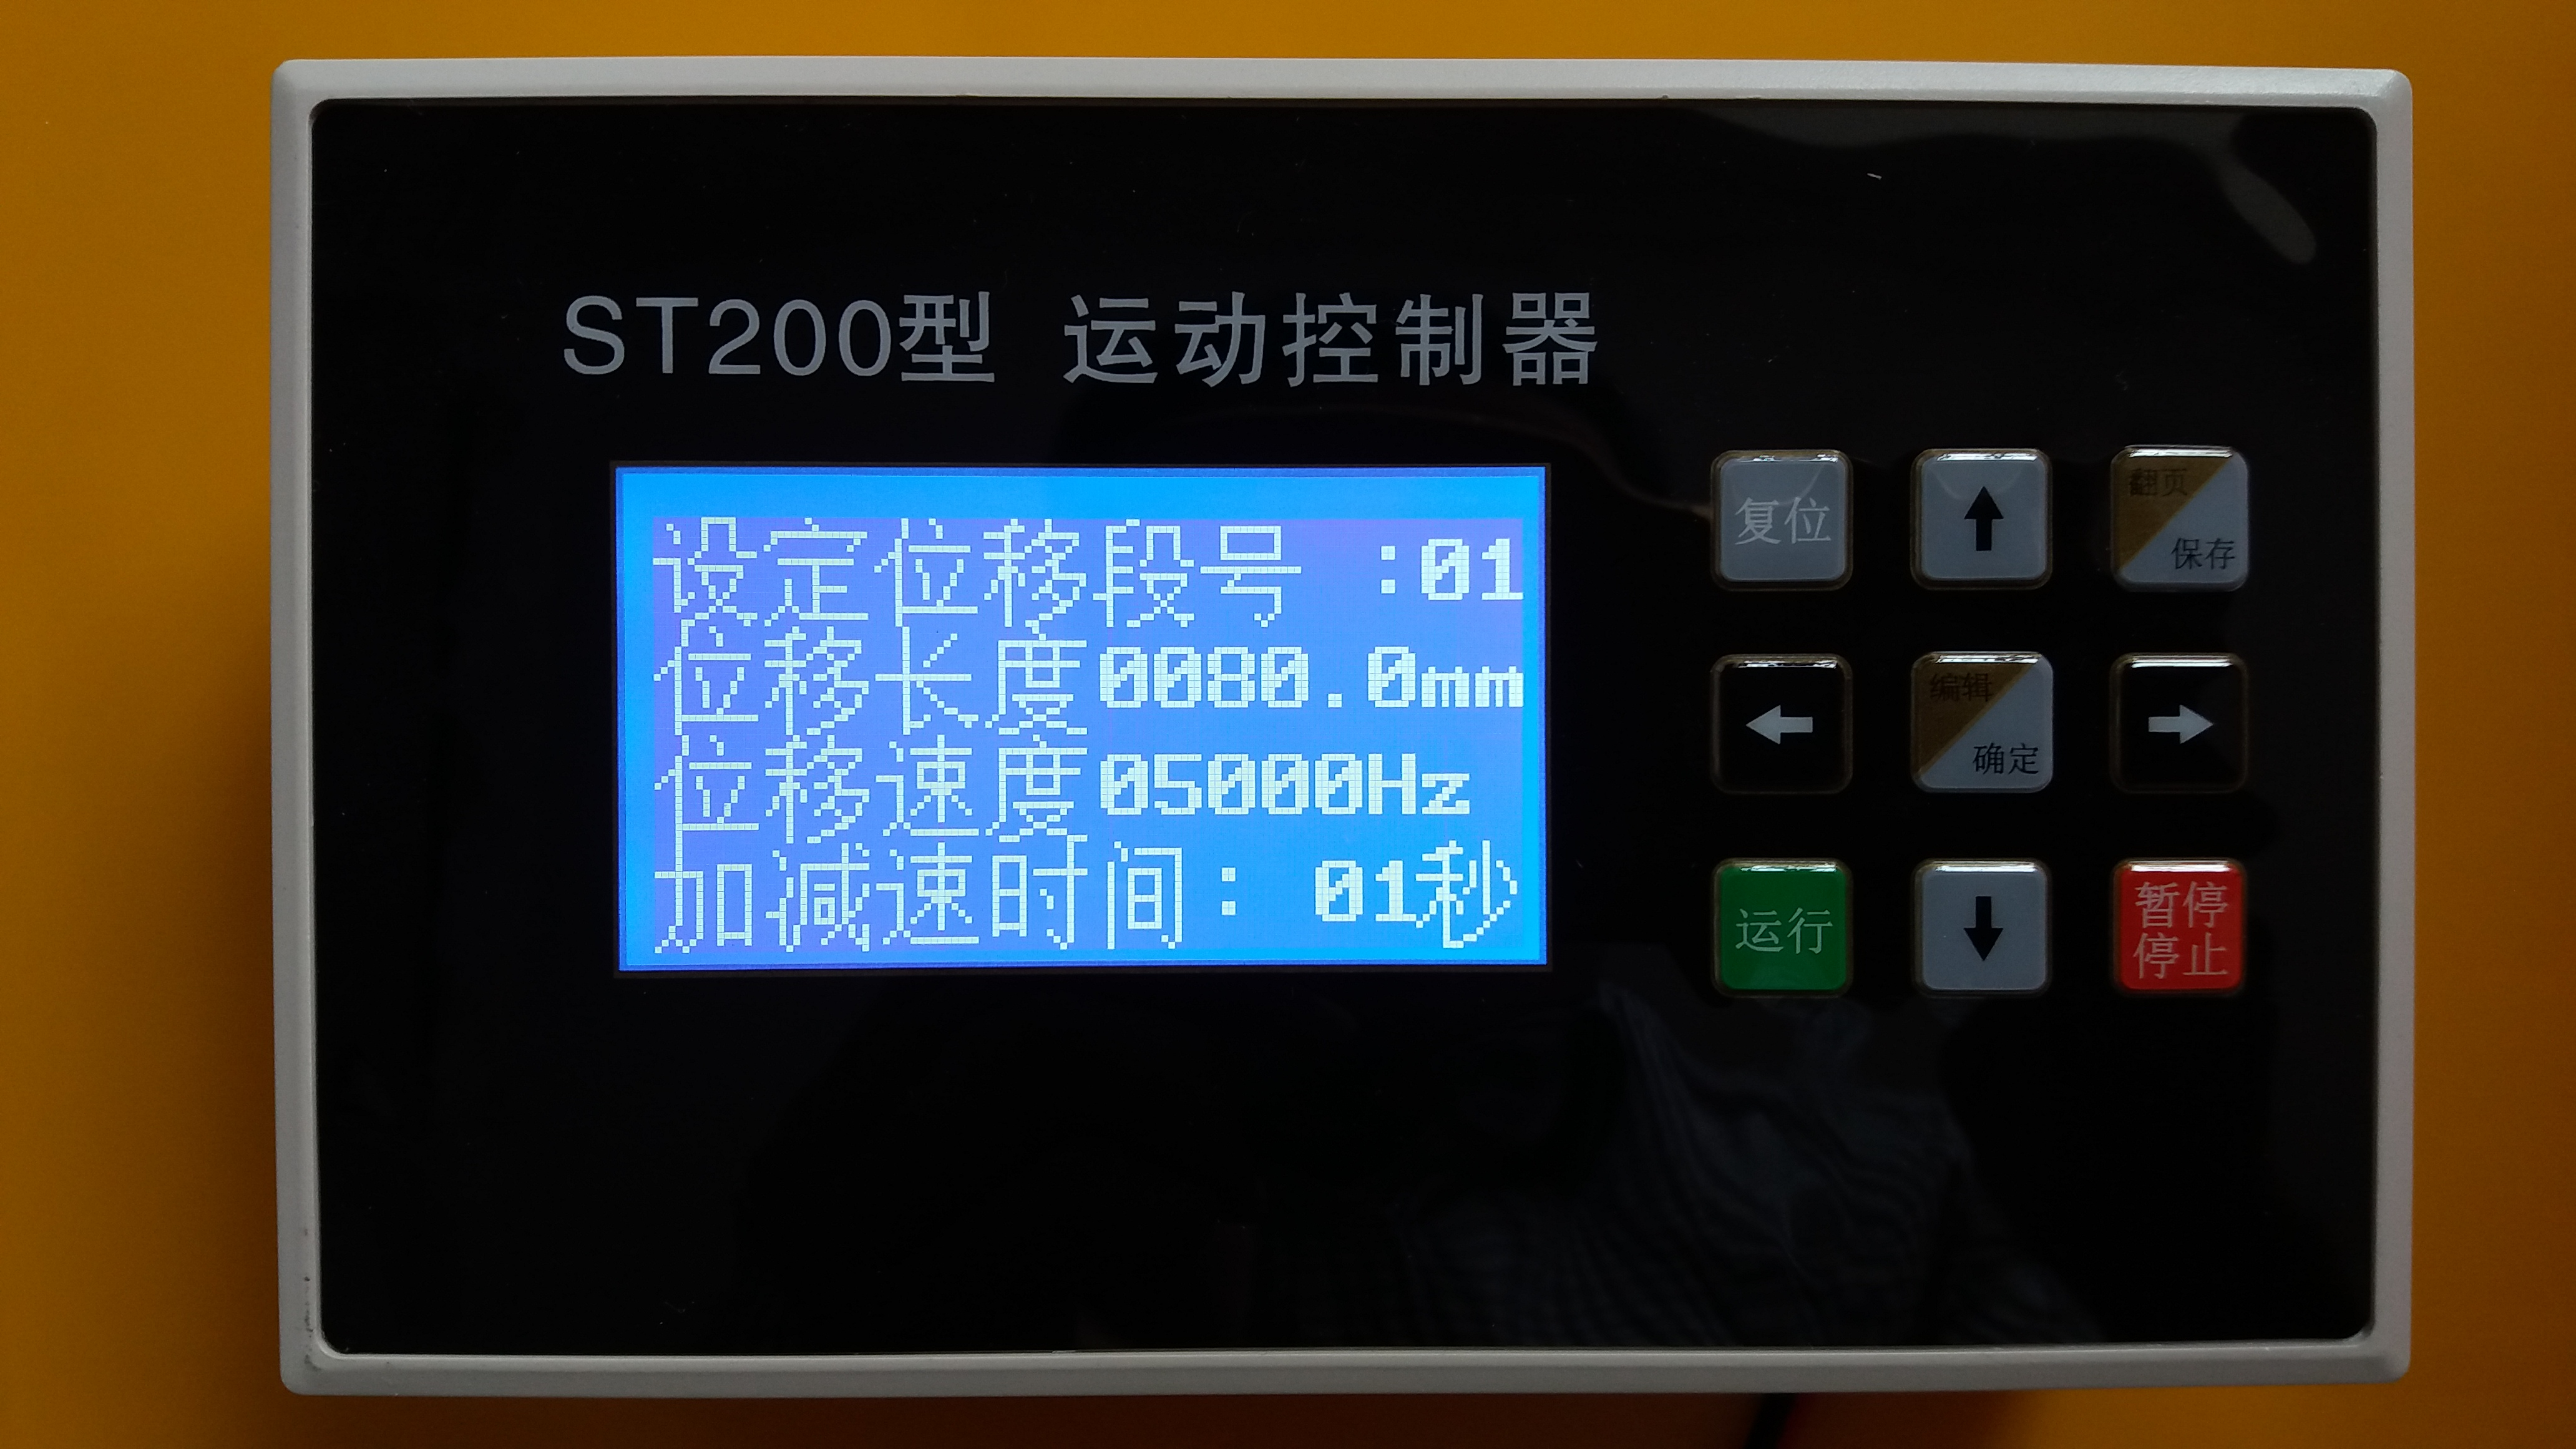 Stepper motor controller, two-axis motion controller / Chinese interface / a look will / video